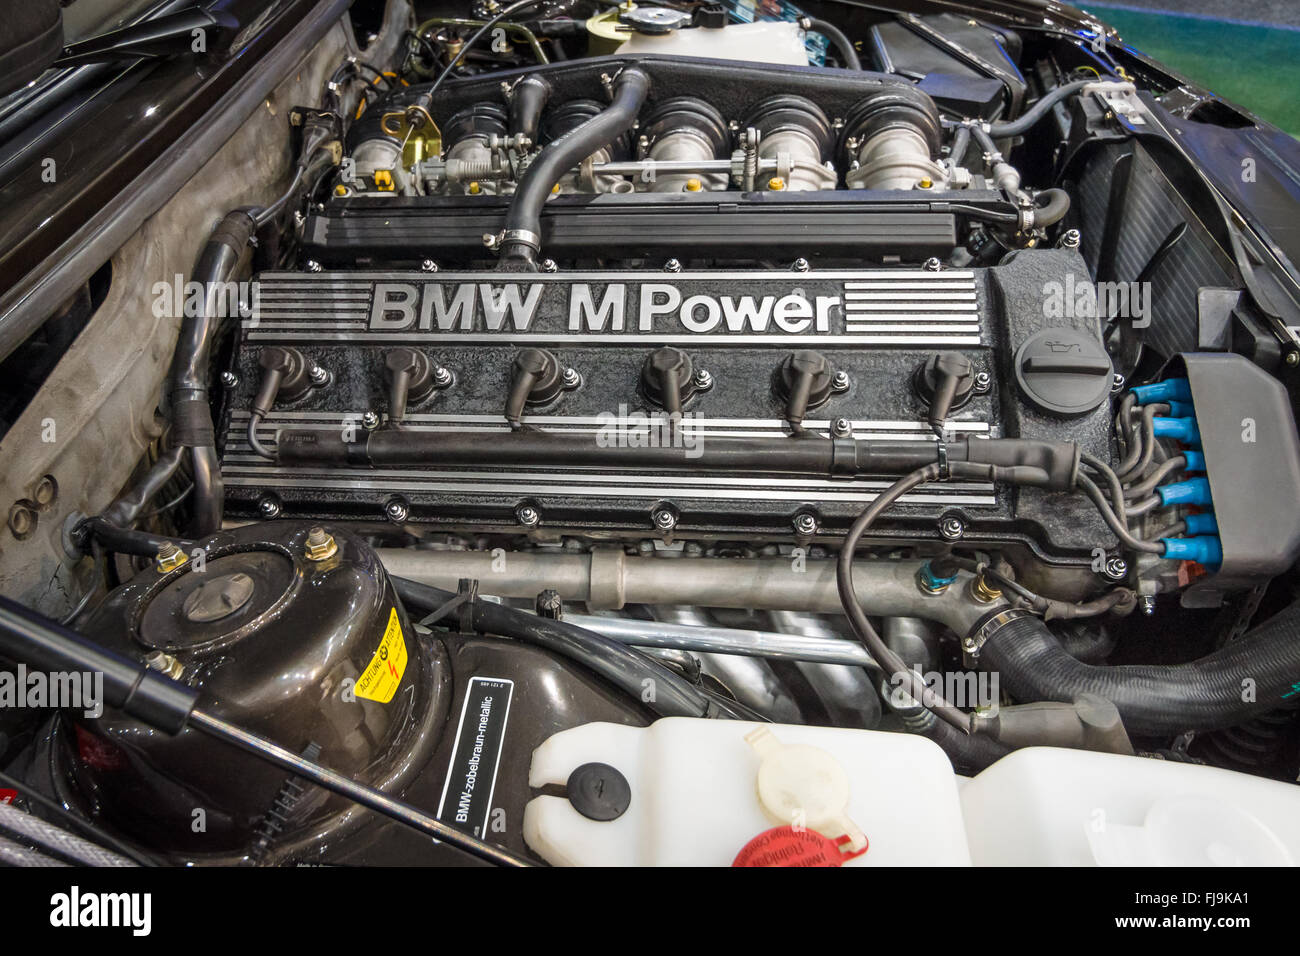 Engine M Power of BMW 3 Series E36 Closeup Stock Photo